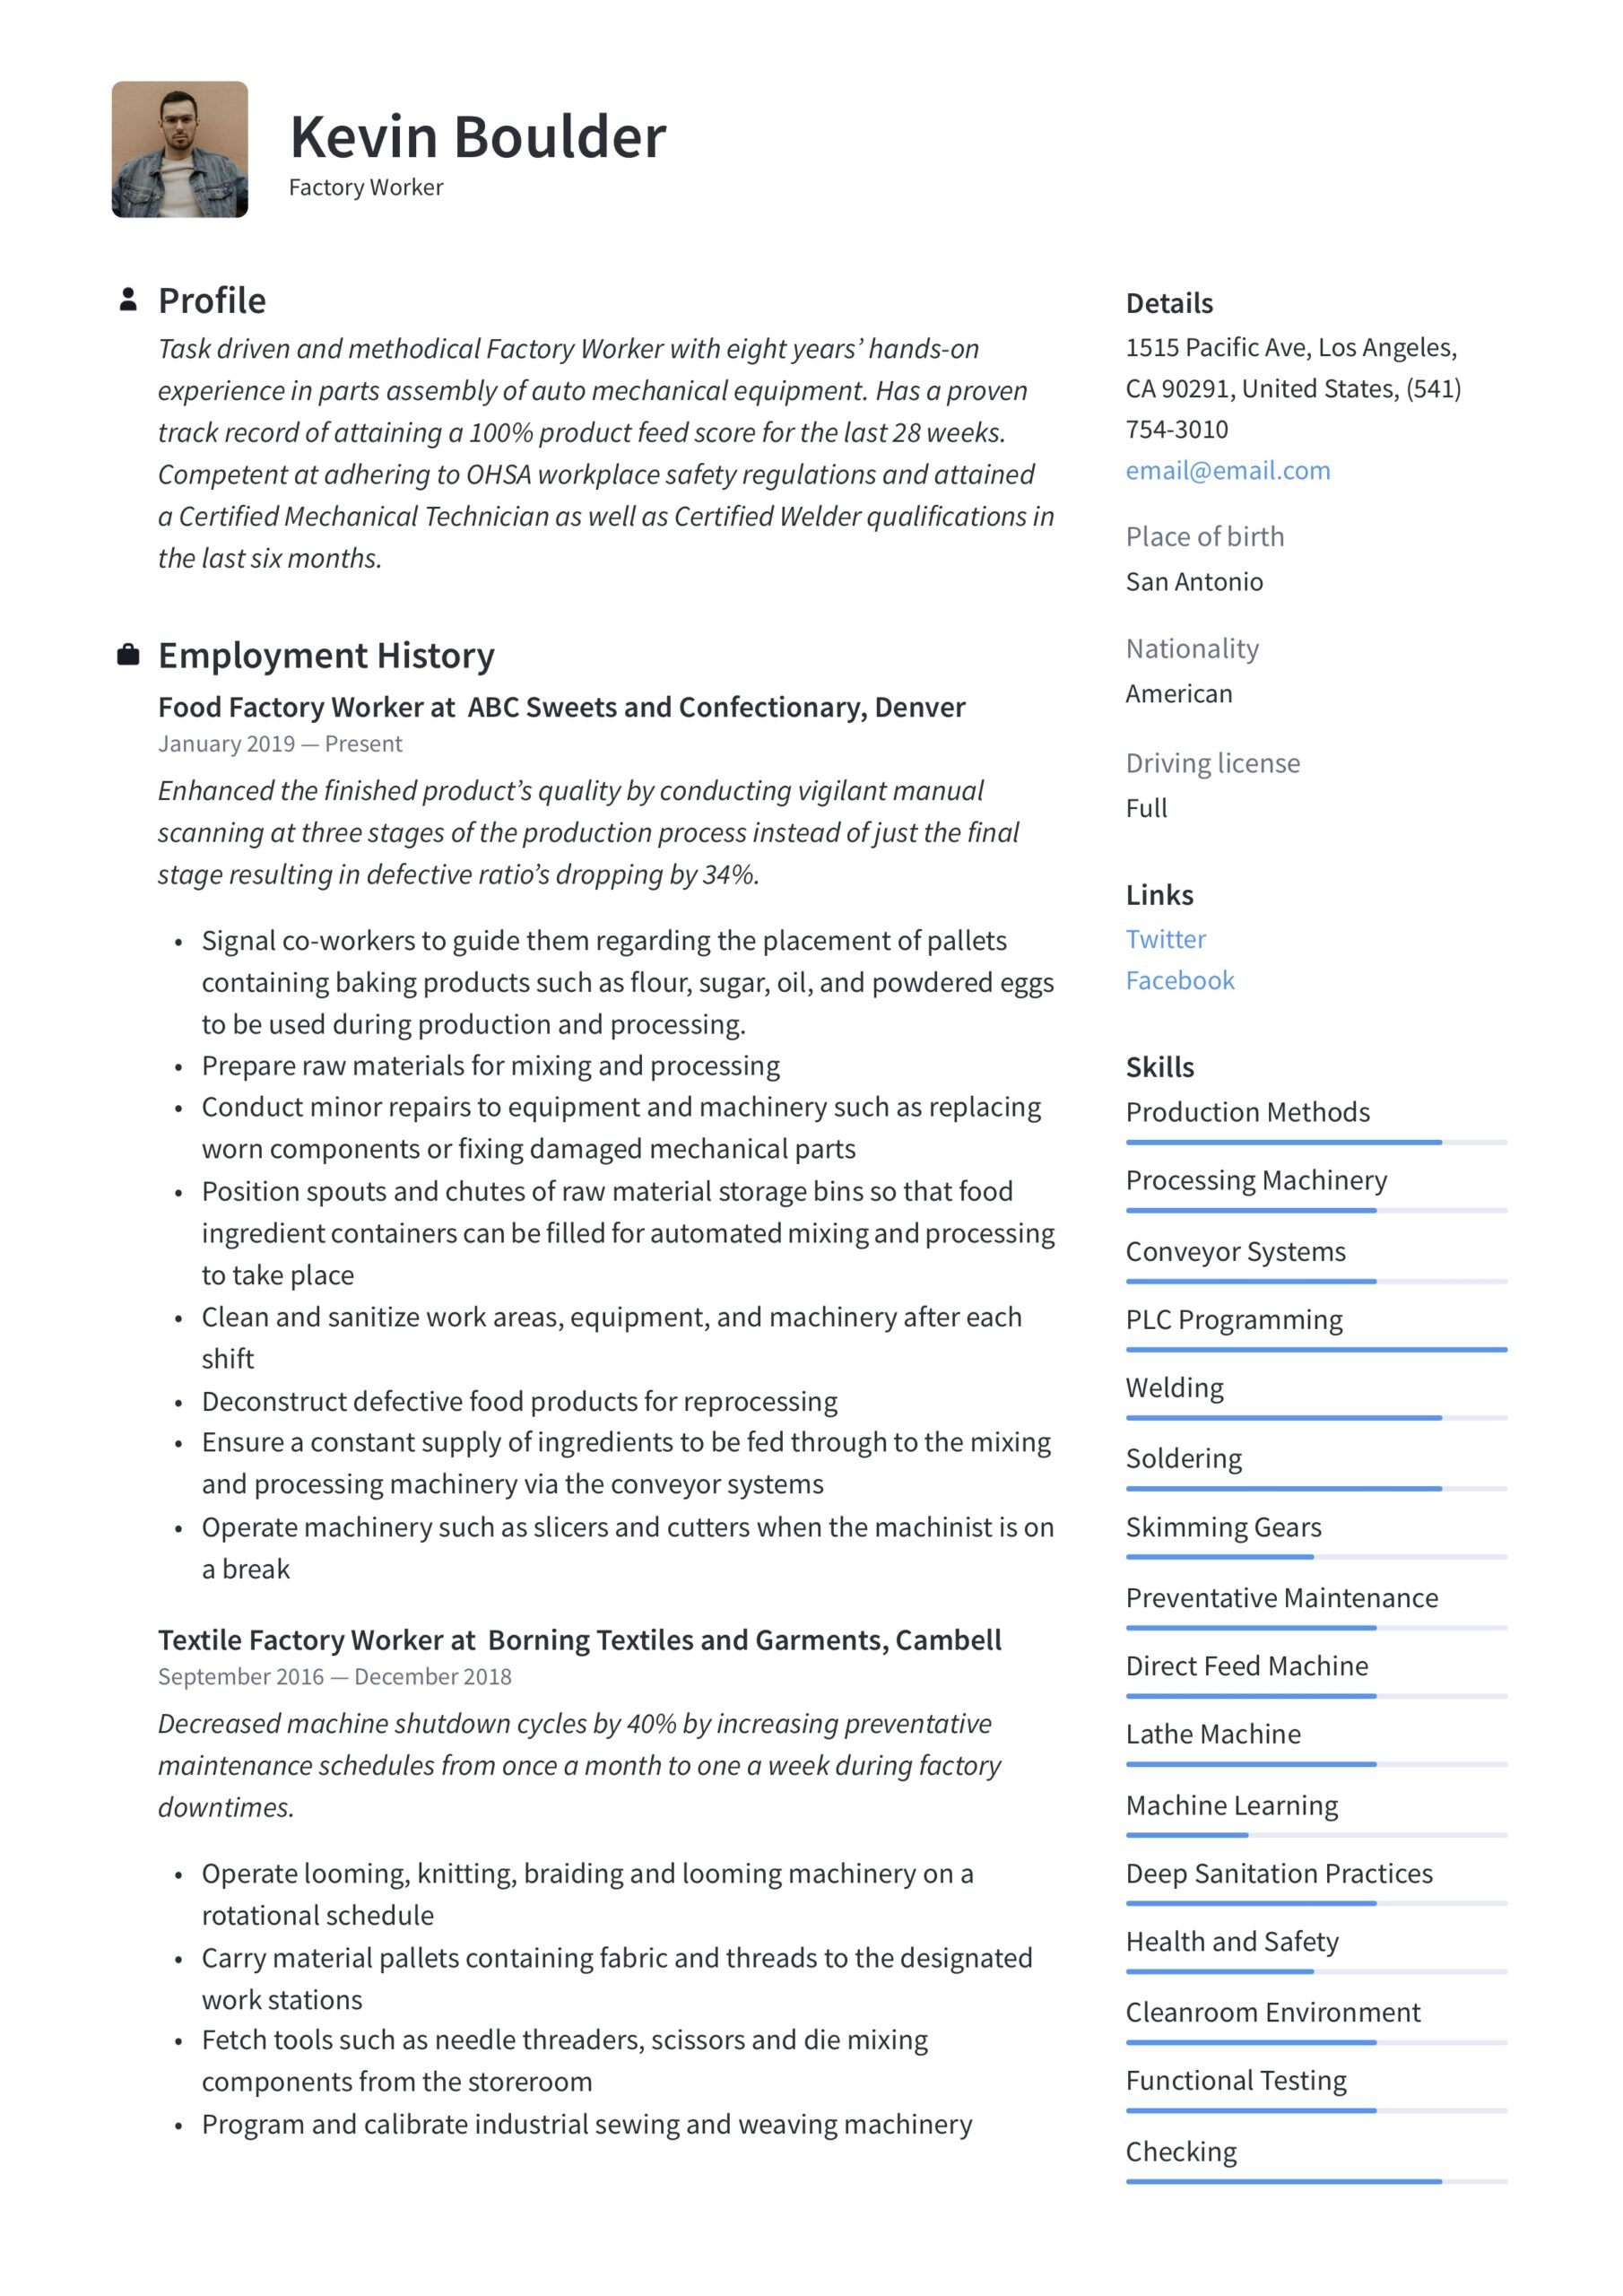 factory worker resume writing guide examples good first student for internship creating Resume Factory Worker Resume Examples